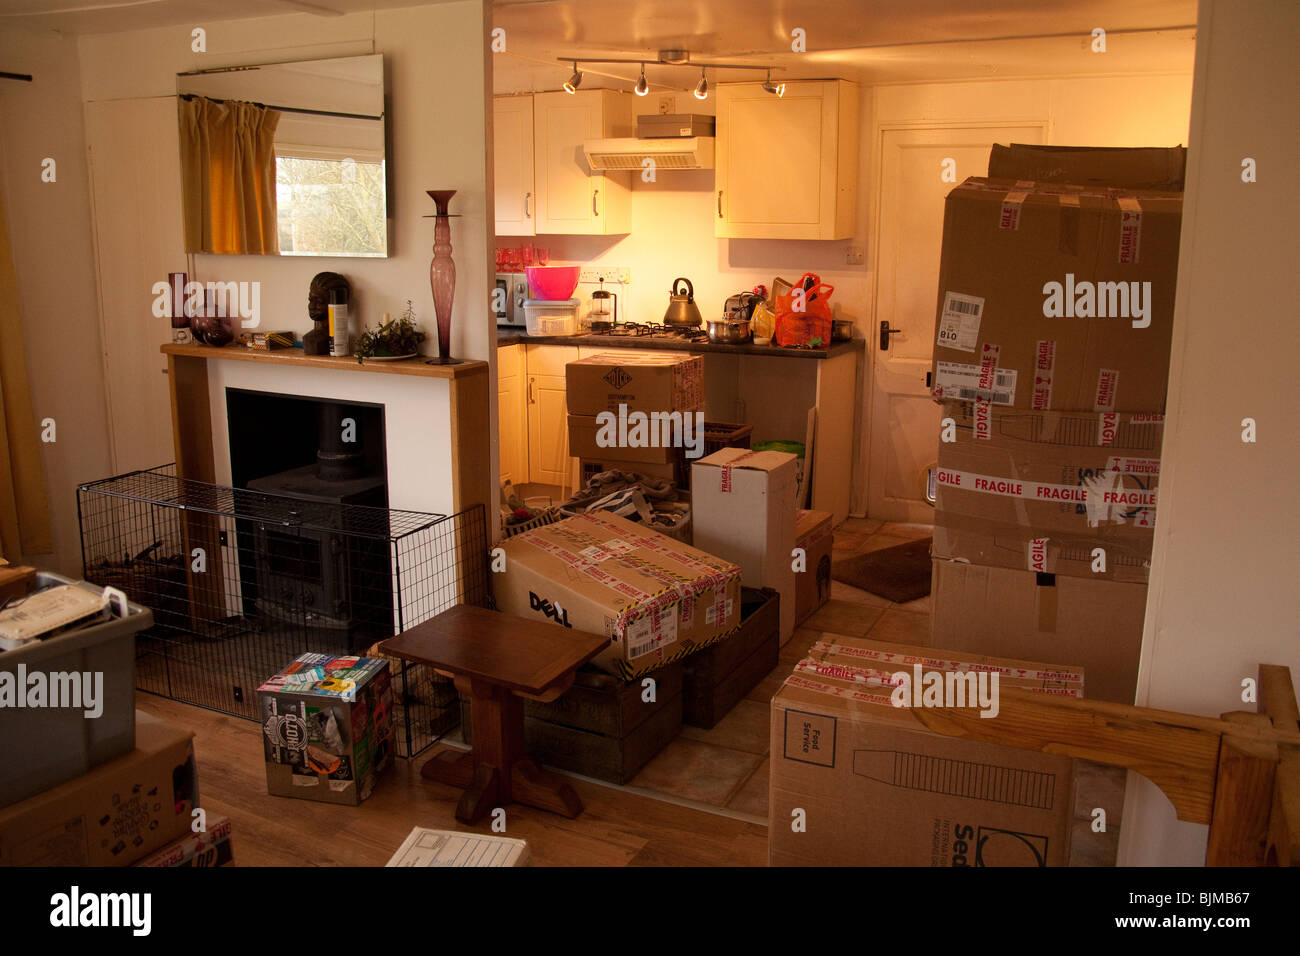 Chaos and mess of moving house, Hampshire, England. - Stock Image